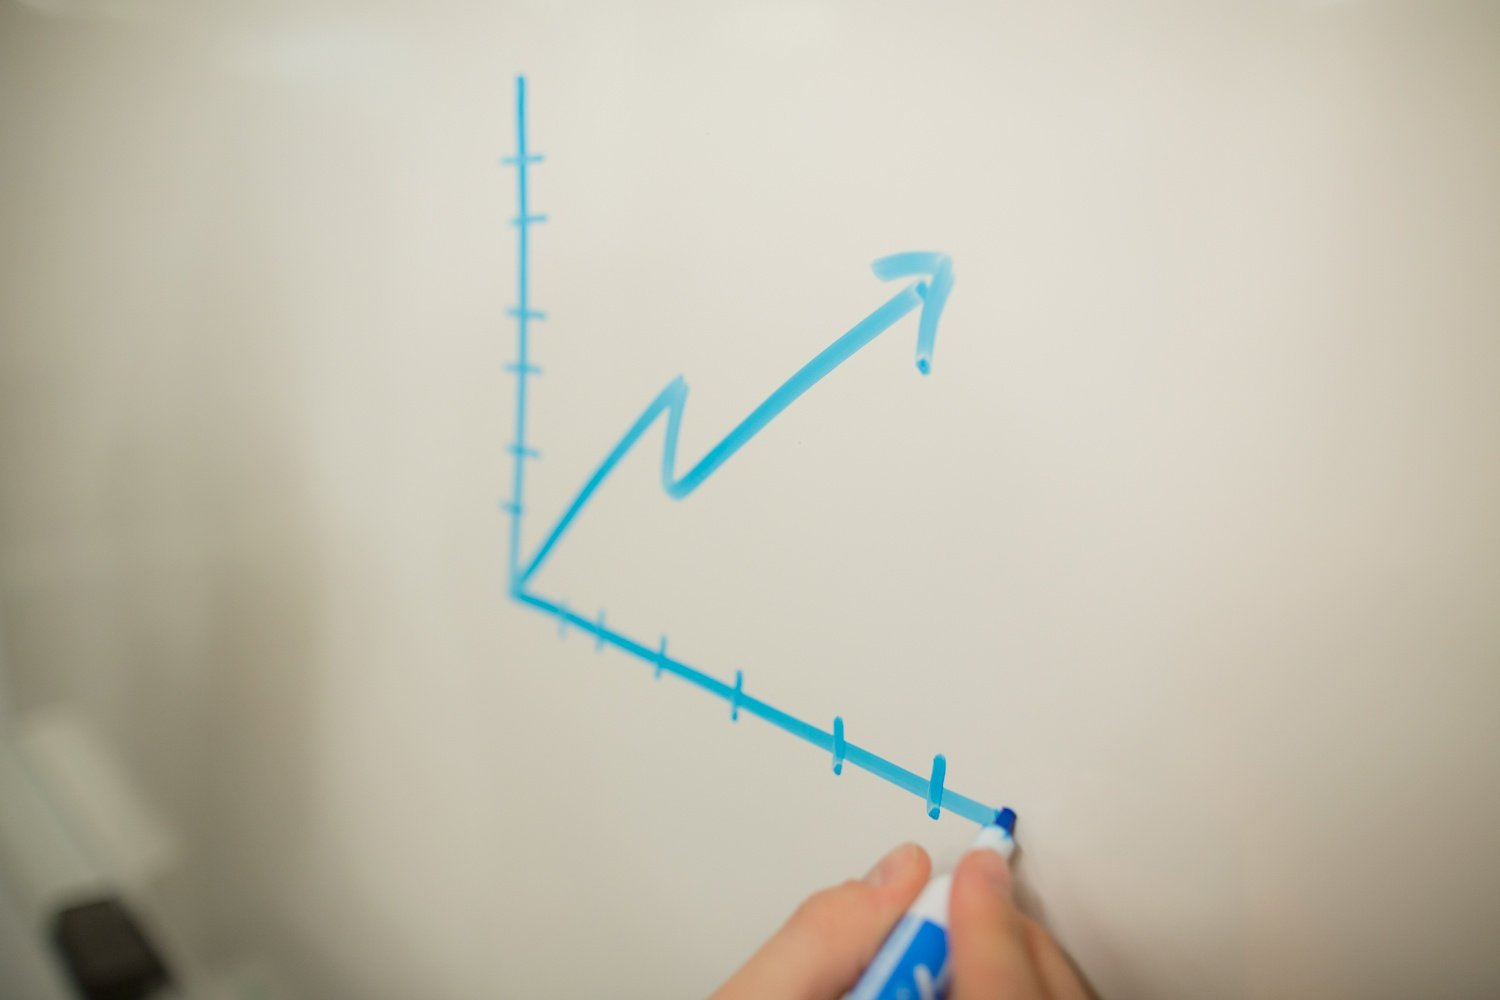 whiteboard-graph